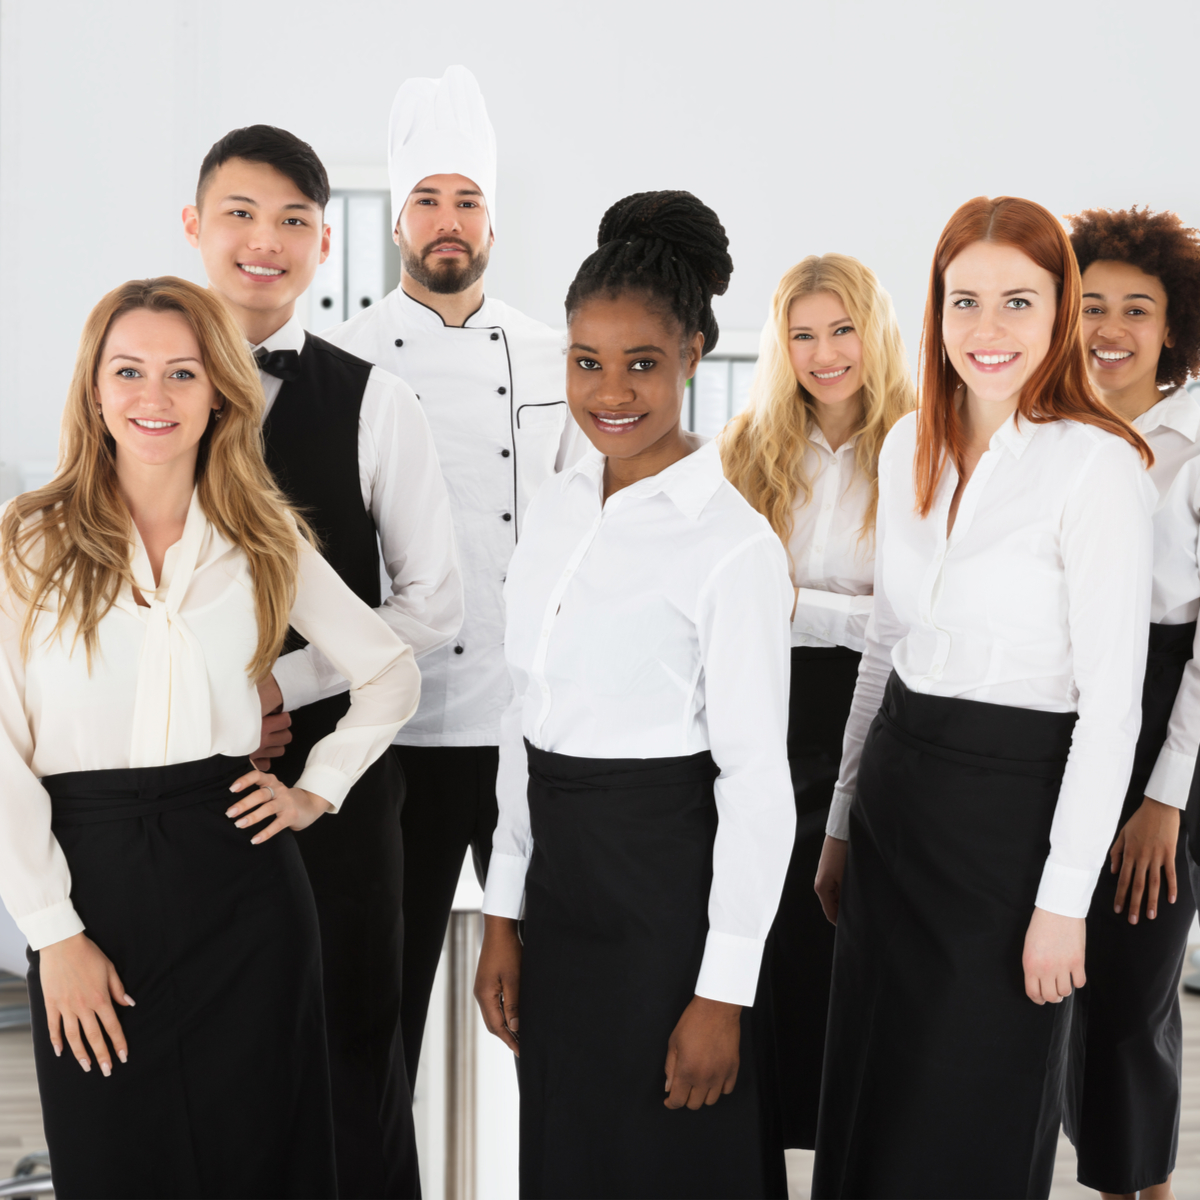 4 Things To Consider When Choosing Restaurant Uniforms